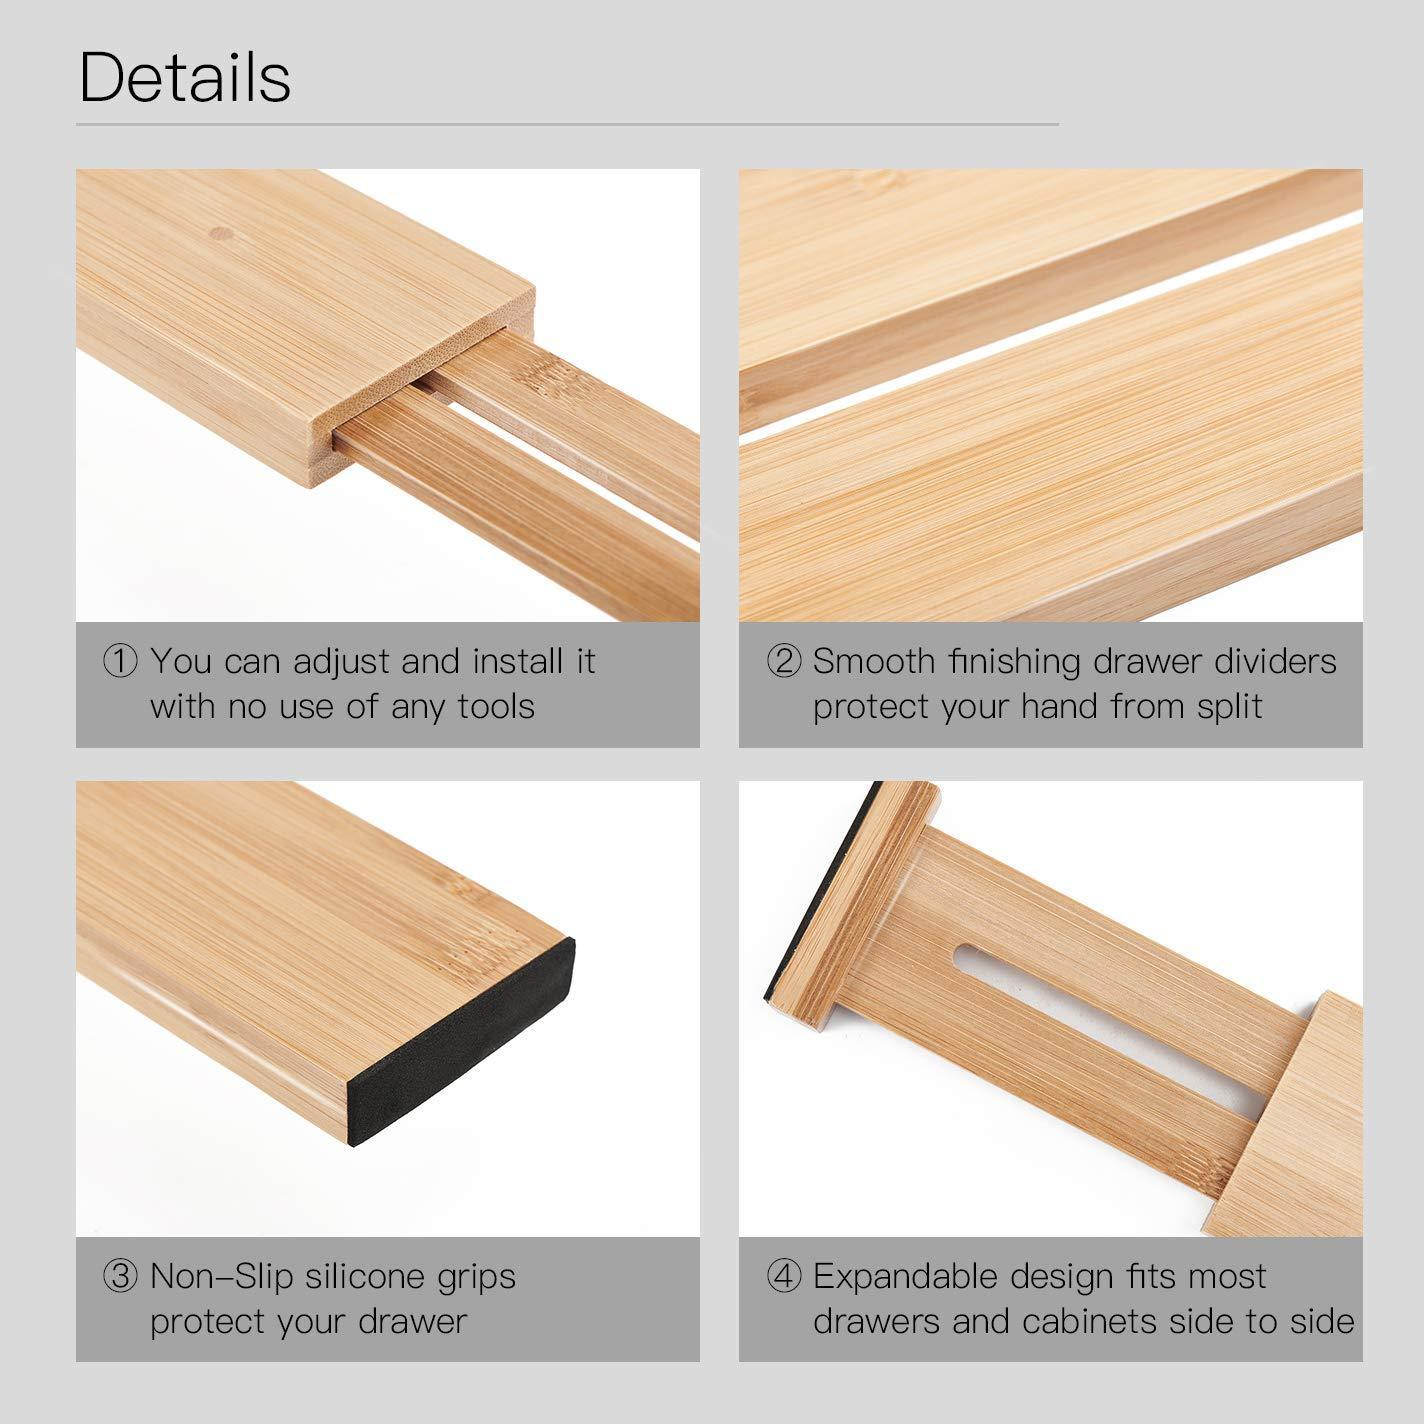 Save on utoplike 4 pack bamboo kitchen drawer dividers 17 5 21 65in adjustable drawer organizers spring loaded works in kitchen dresser bathroom bedroom baby drawer desk